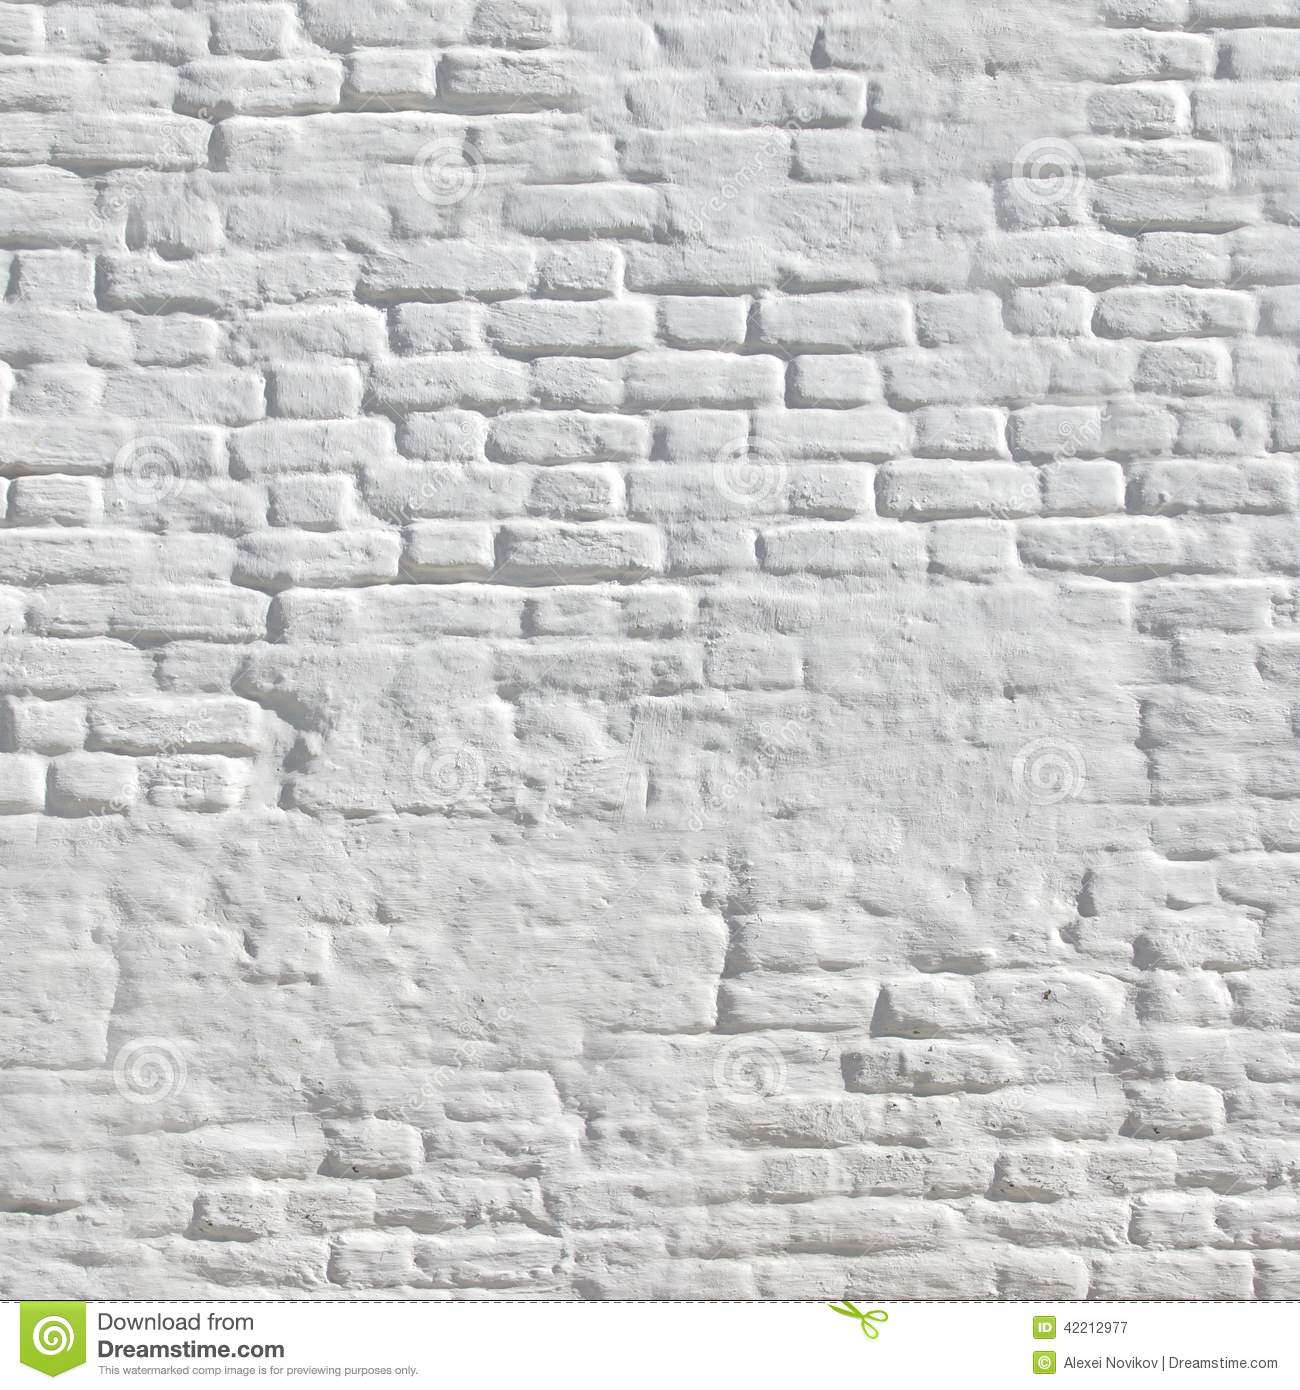 Hourwall Classicbrick Vintagewhite: White Vintage Brick Wall Stock Image. Image Of Rough